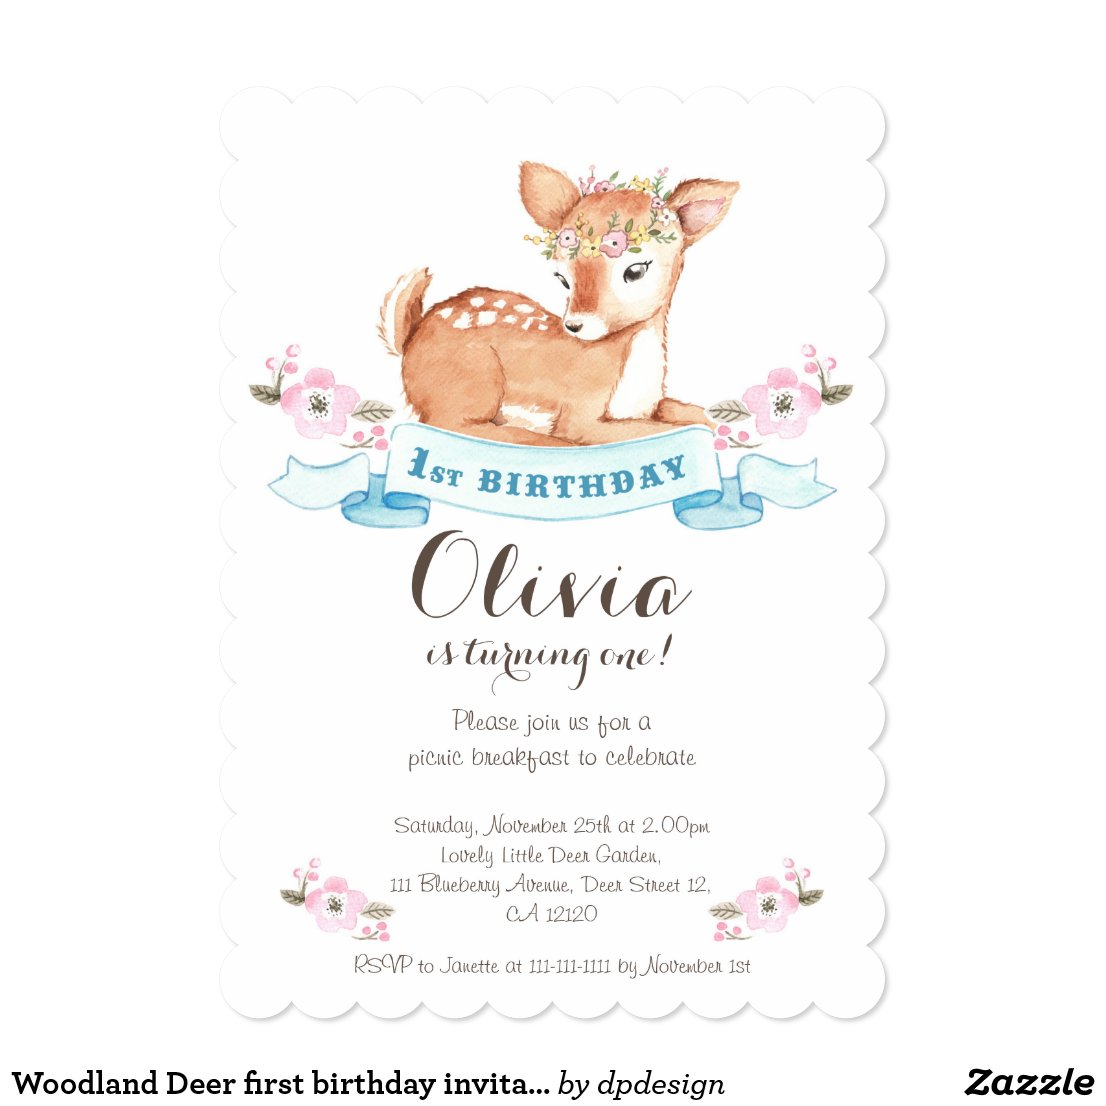 Woodland Deer first birthday invitation